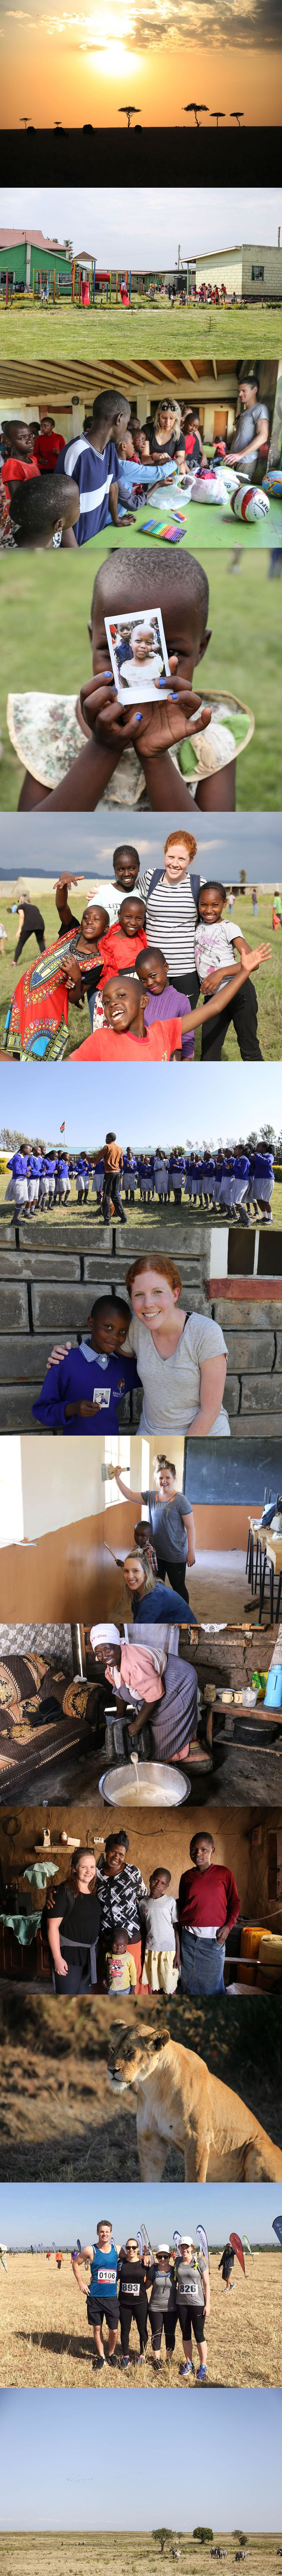 Last month I was lucky enough to be one of four employees sent to Kenya to meet the people behind Trilogy's long-term partner So They Can. So They Can is an Australasian not-for-profit organisation working to educate and empower communities in Kenya and Tanzania.  The four of us fundraised over $23,000 for this worthy cause by running the Maasai Mara half marathon through the national game park.